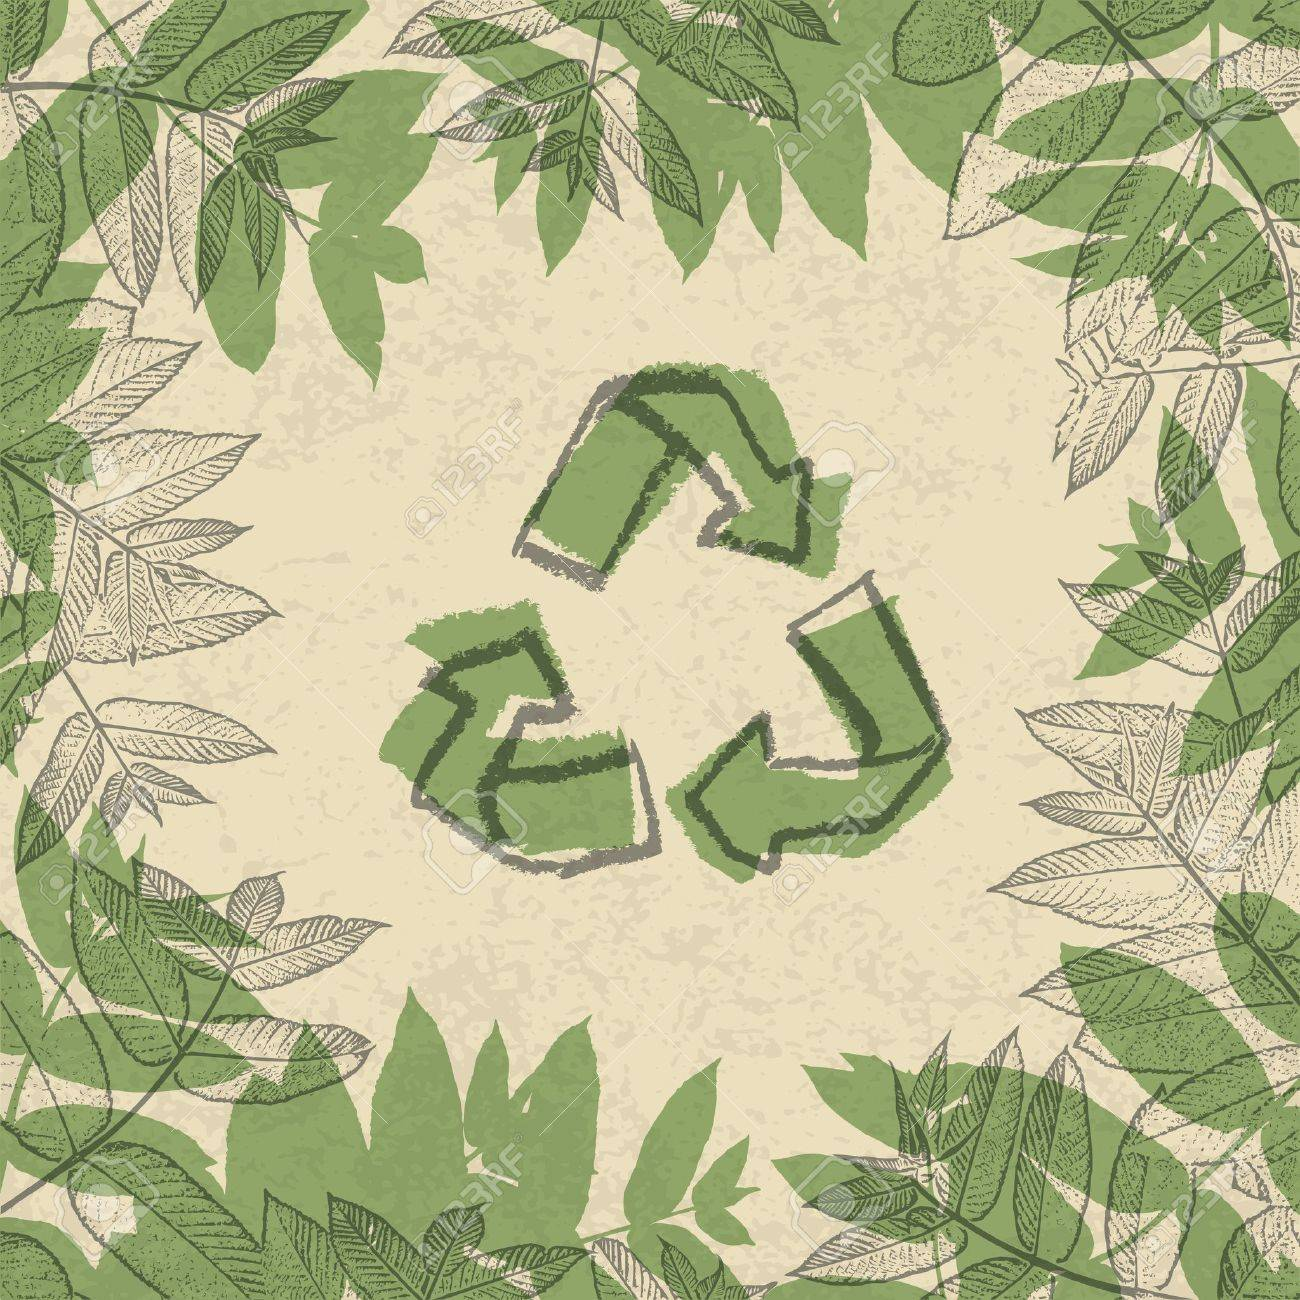 recycle symbol printed on reuse paper in frame of leaves